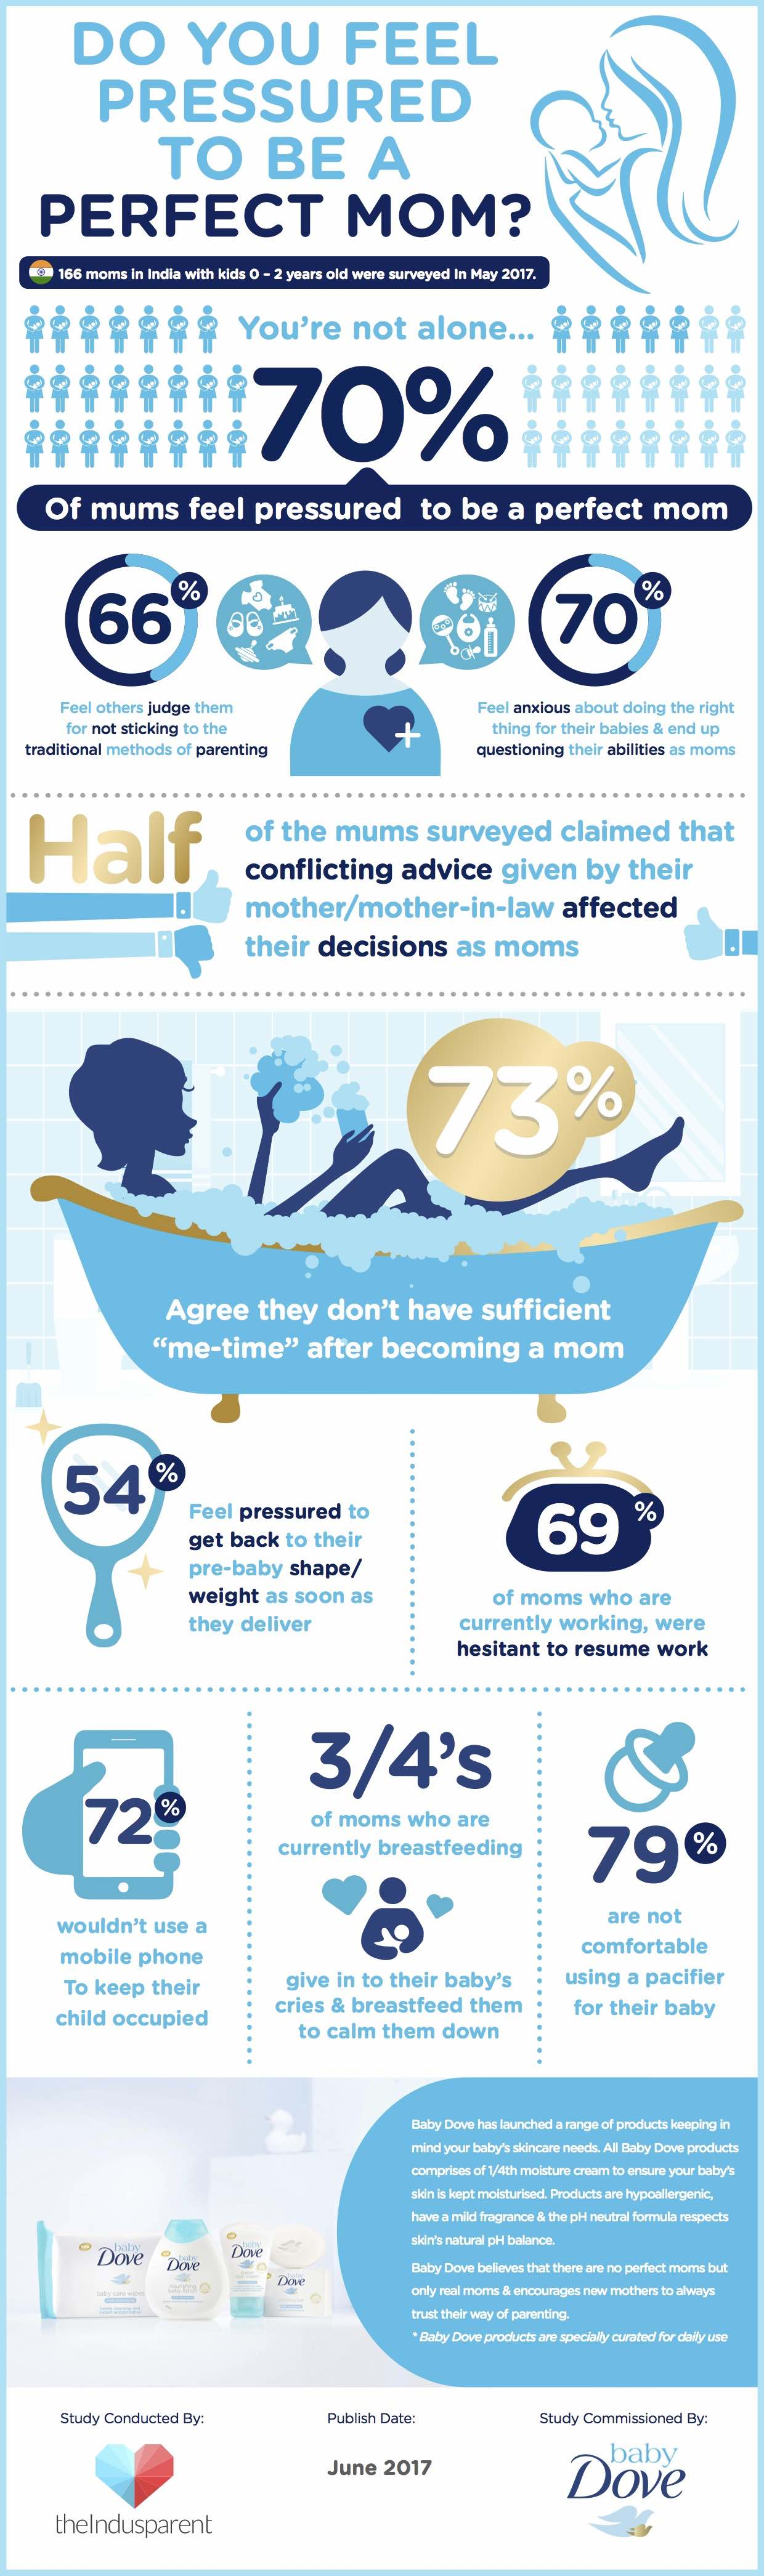 src=https://www.theindusparent.com/wp content/uploads/sites/9/2017/06/Baby Dove Infographic Final.jpg Exclusive! Young mums say they feel the pressure of being a 'Perfect Mom'!